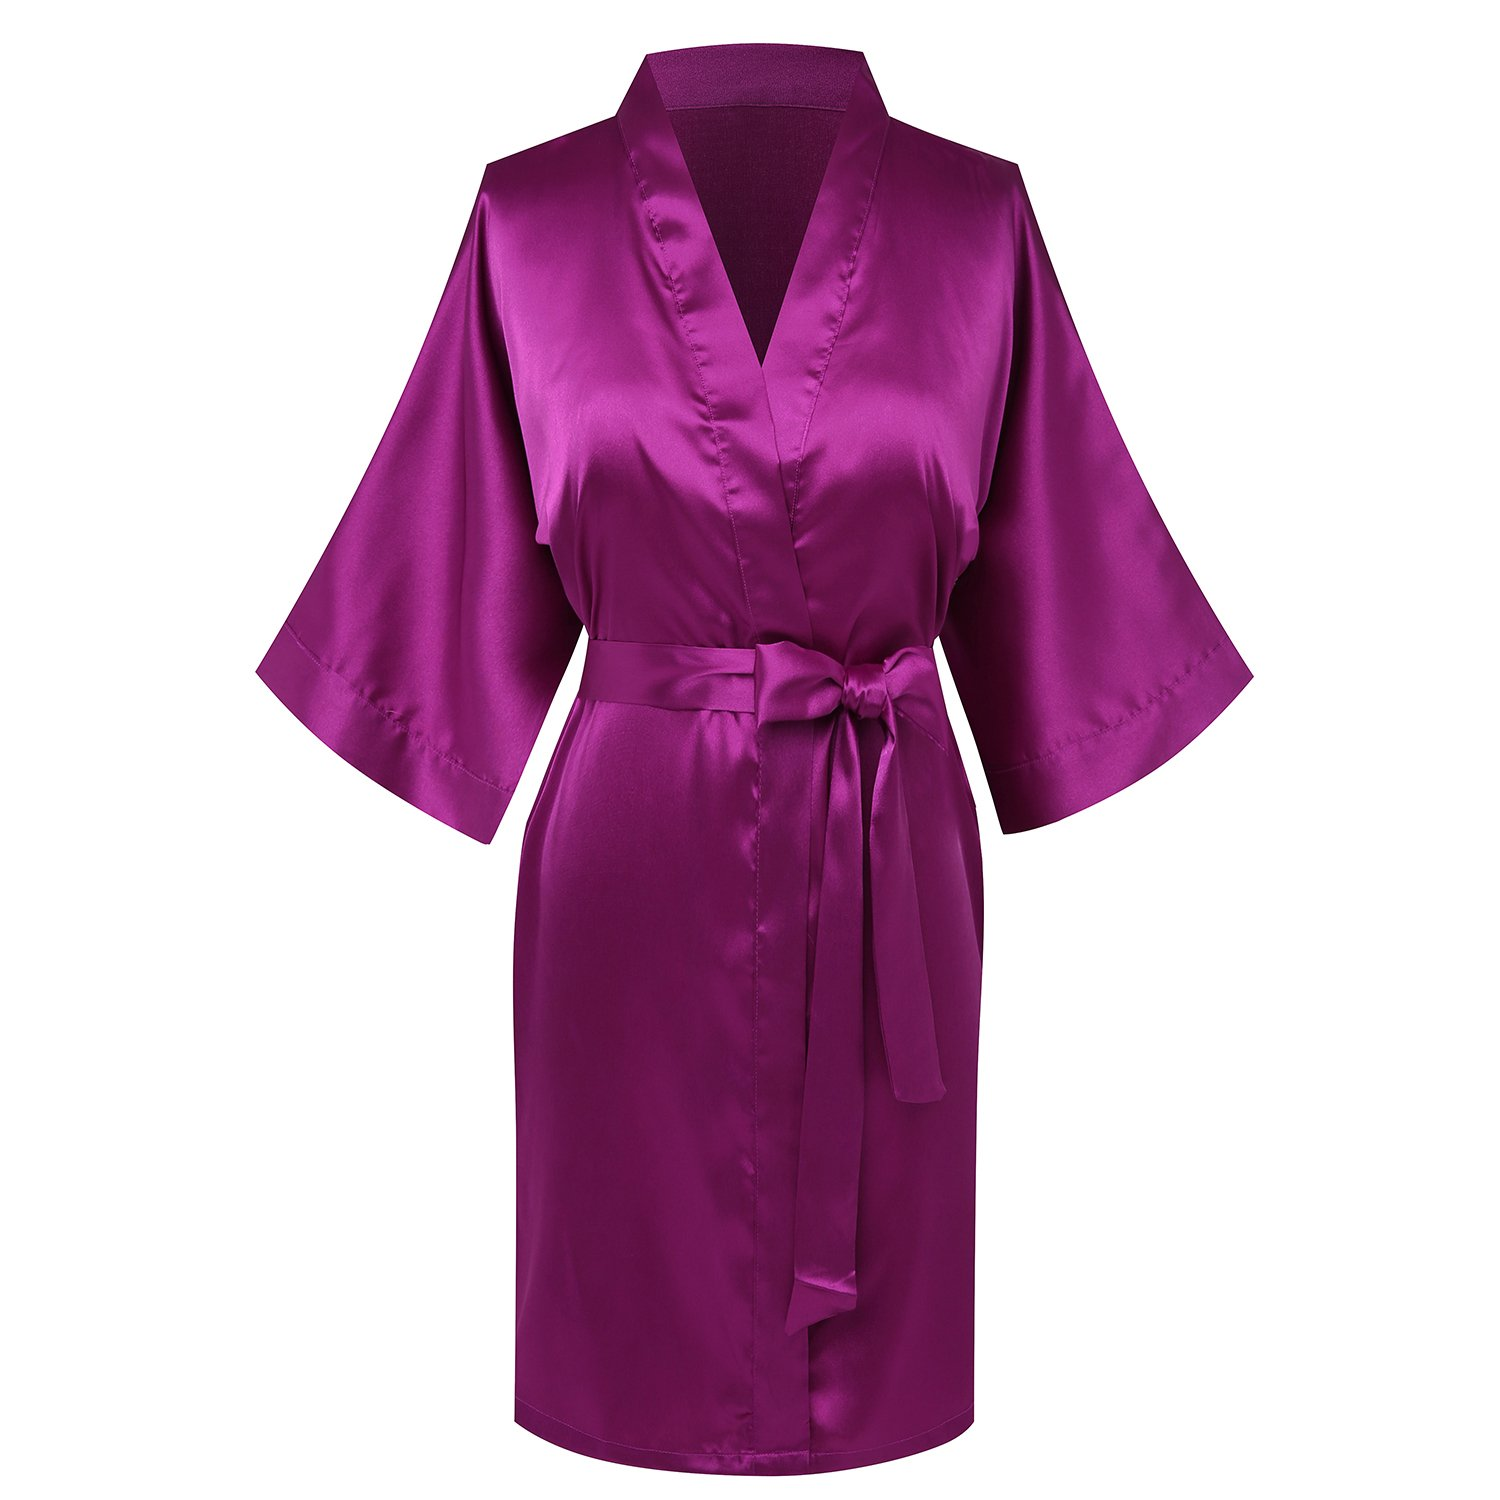 Joy Bridalc Women's Satin Short Kimono Bridemaid Robe Bathrobe for Wedding Party